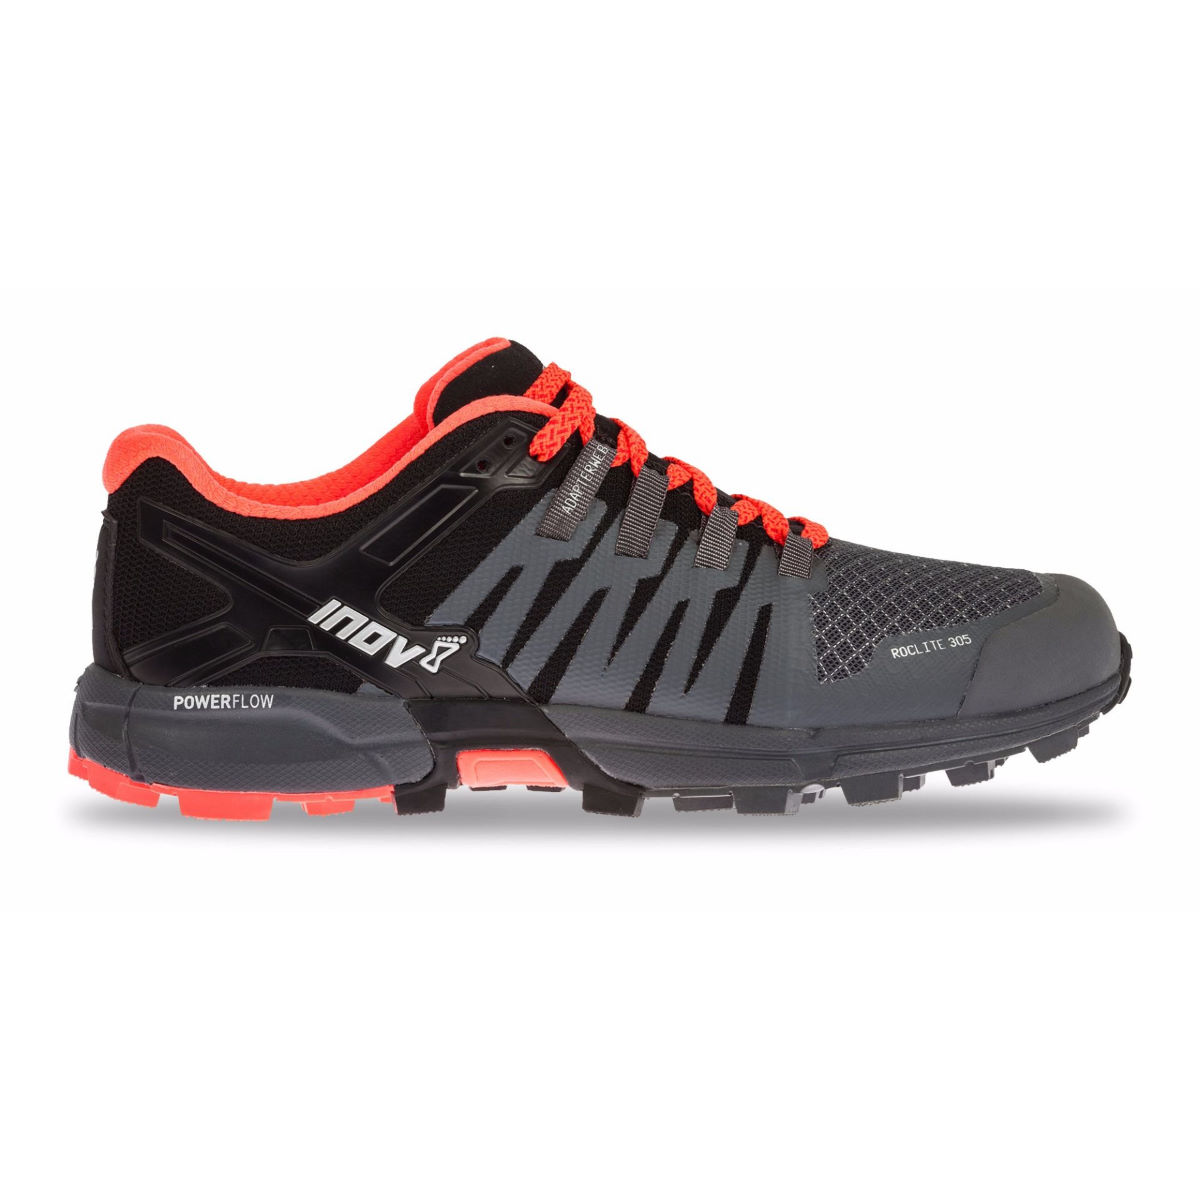 Chaussures Femme Inov-8 Roclite 305 - UK 4 GREY/BLACK/CORAL